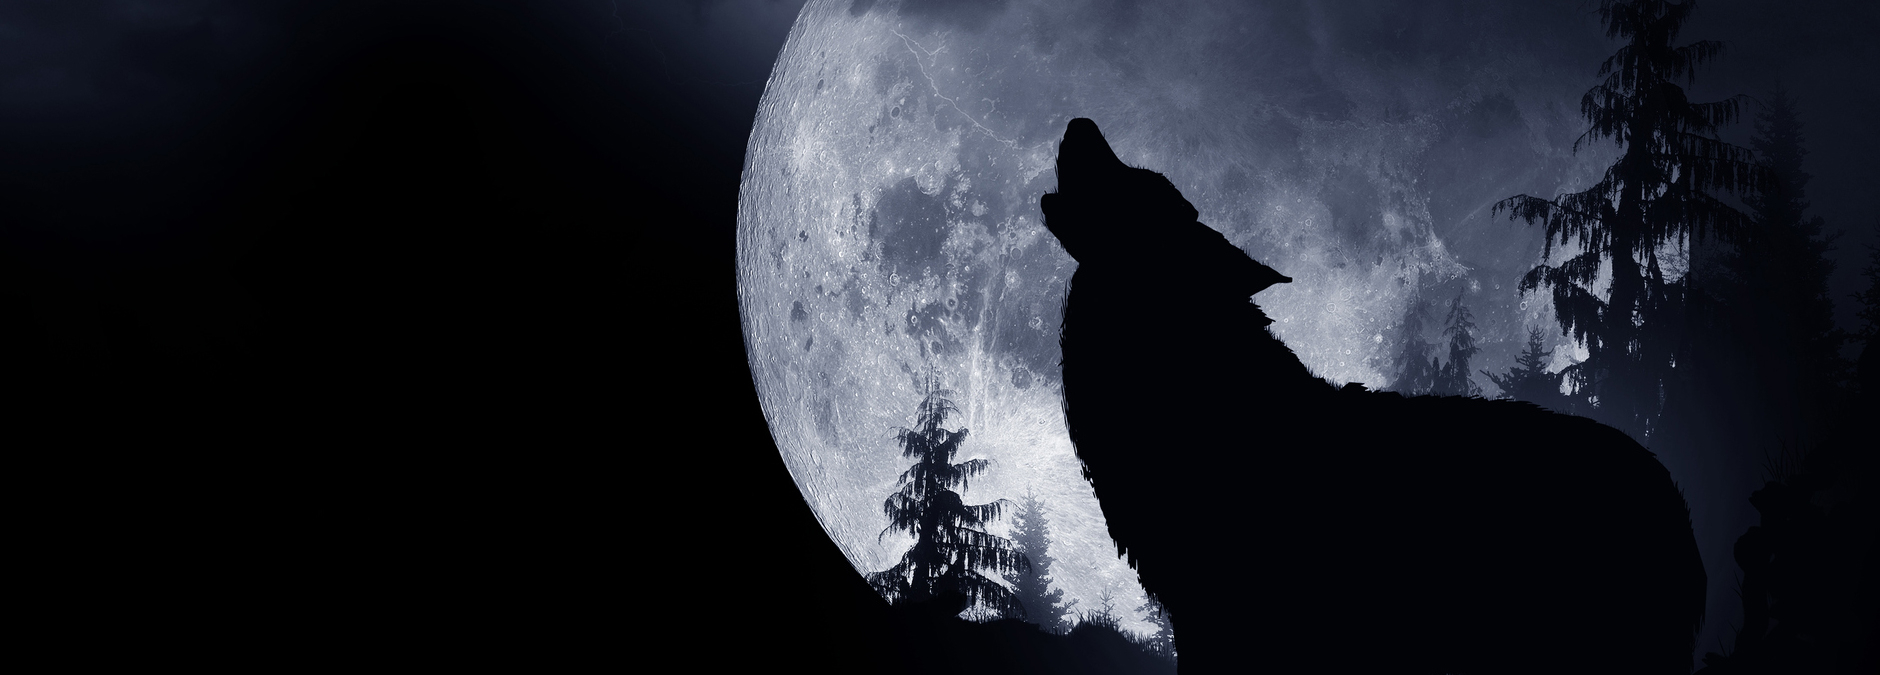 When Is The Next Full Moon? | 2020 Full Moon Dates And Names In Moon Phase Deer Hunting Chart 2021